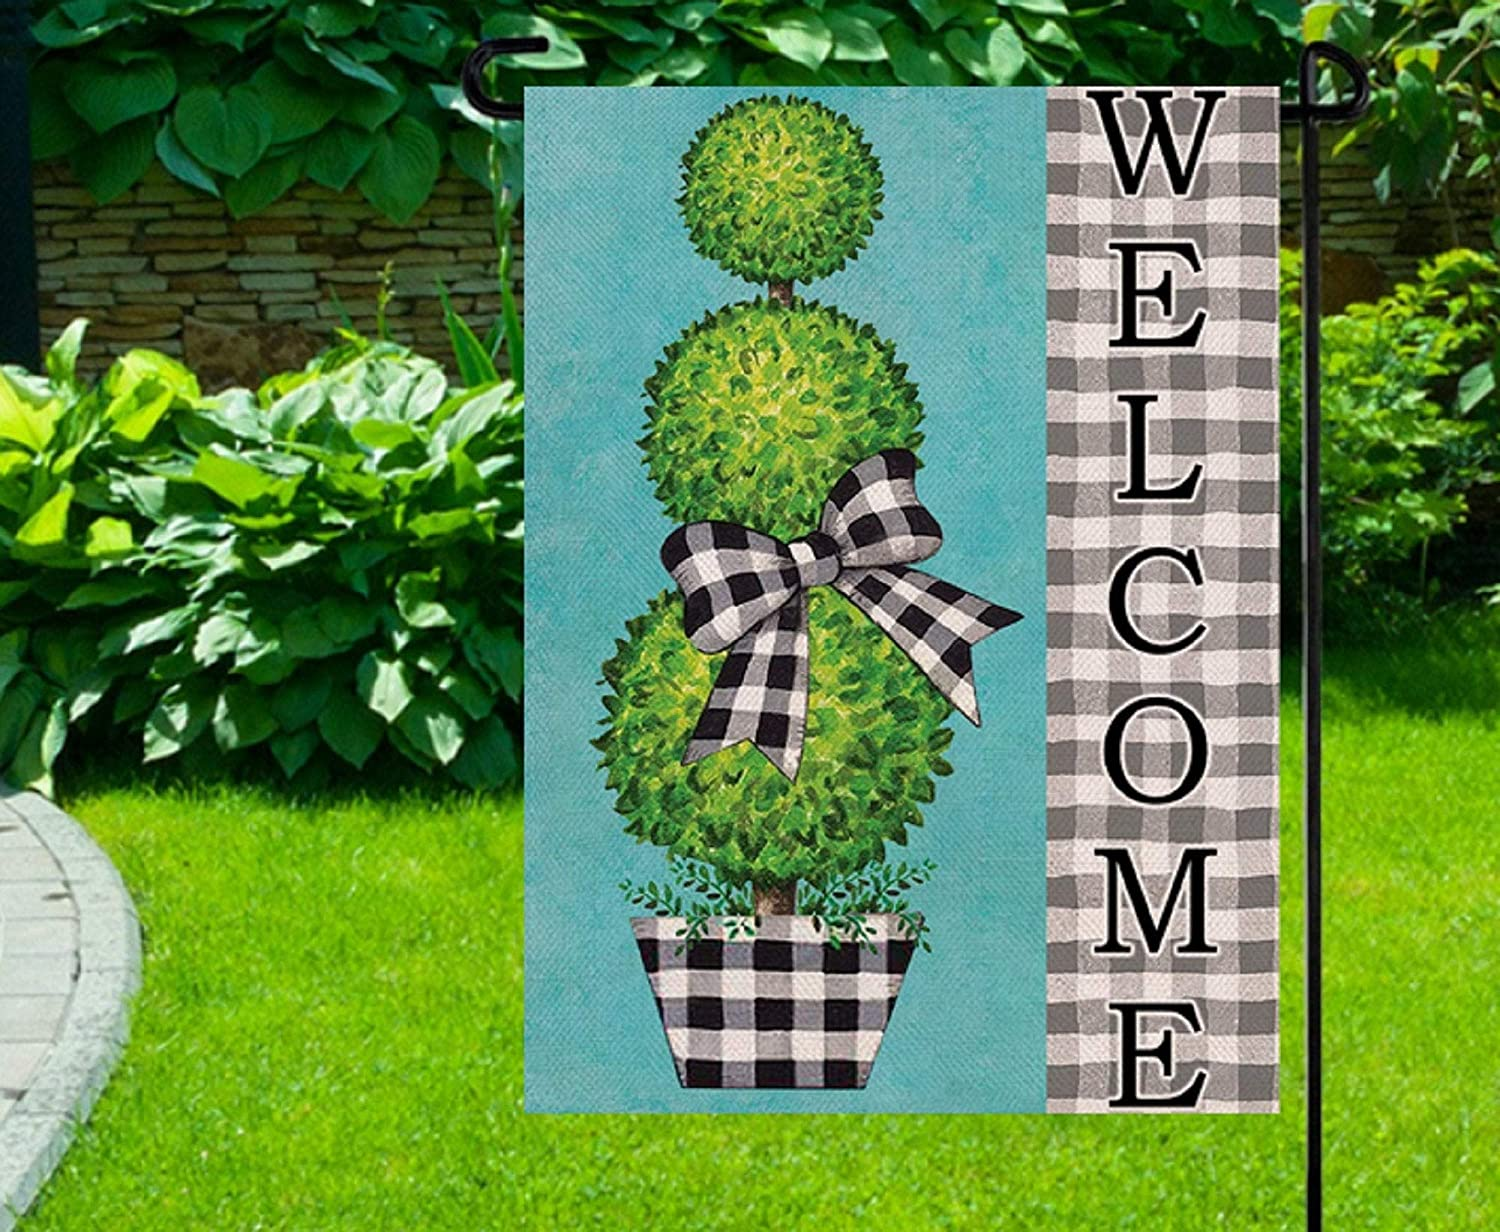 Lplpol Garden Flag Welcome Garden Flag, Topiary Flag, Black Plaid Yard Flag, Summer Welcome Flags, Year Round Garden Flags, Curb Appeal 12x18 inches